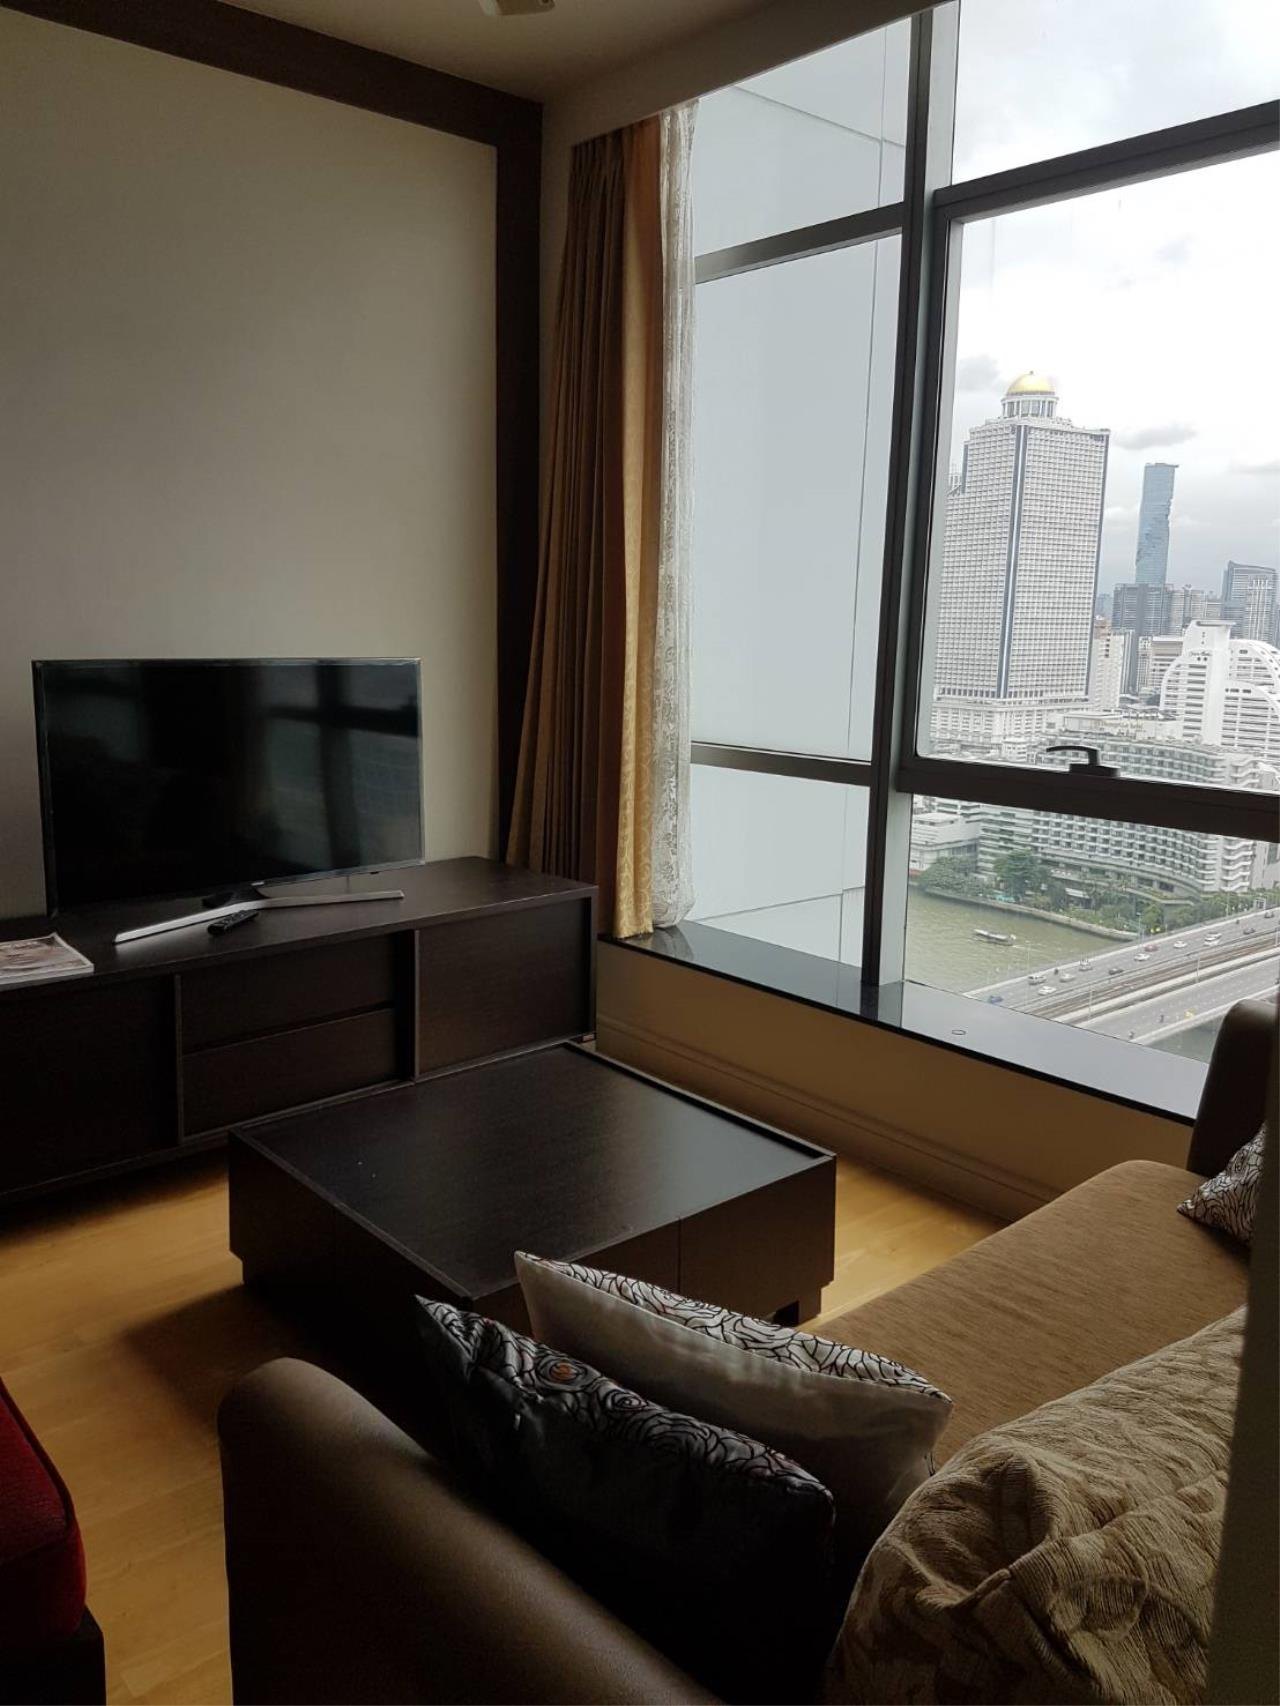 Quality Life Property Agency's For Rent Condo Baan Chao Praya Sathorn 1 Bedroom 1 Bath High Floor Top View 2